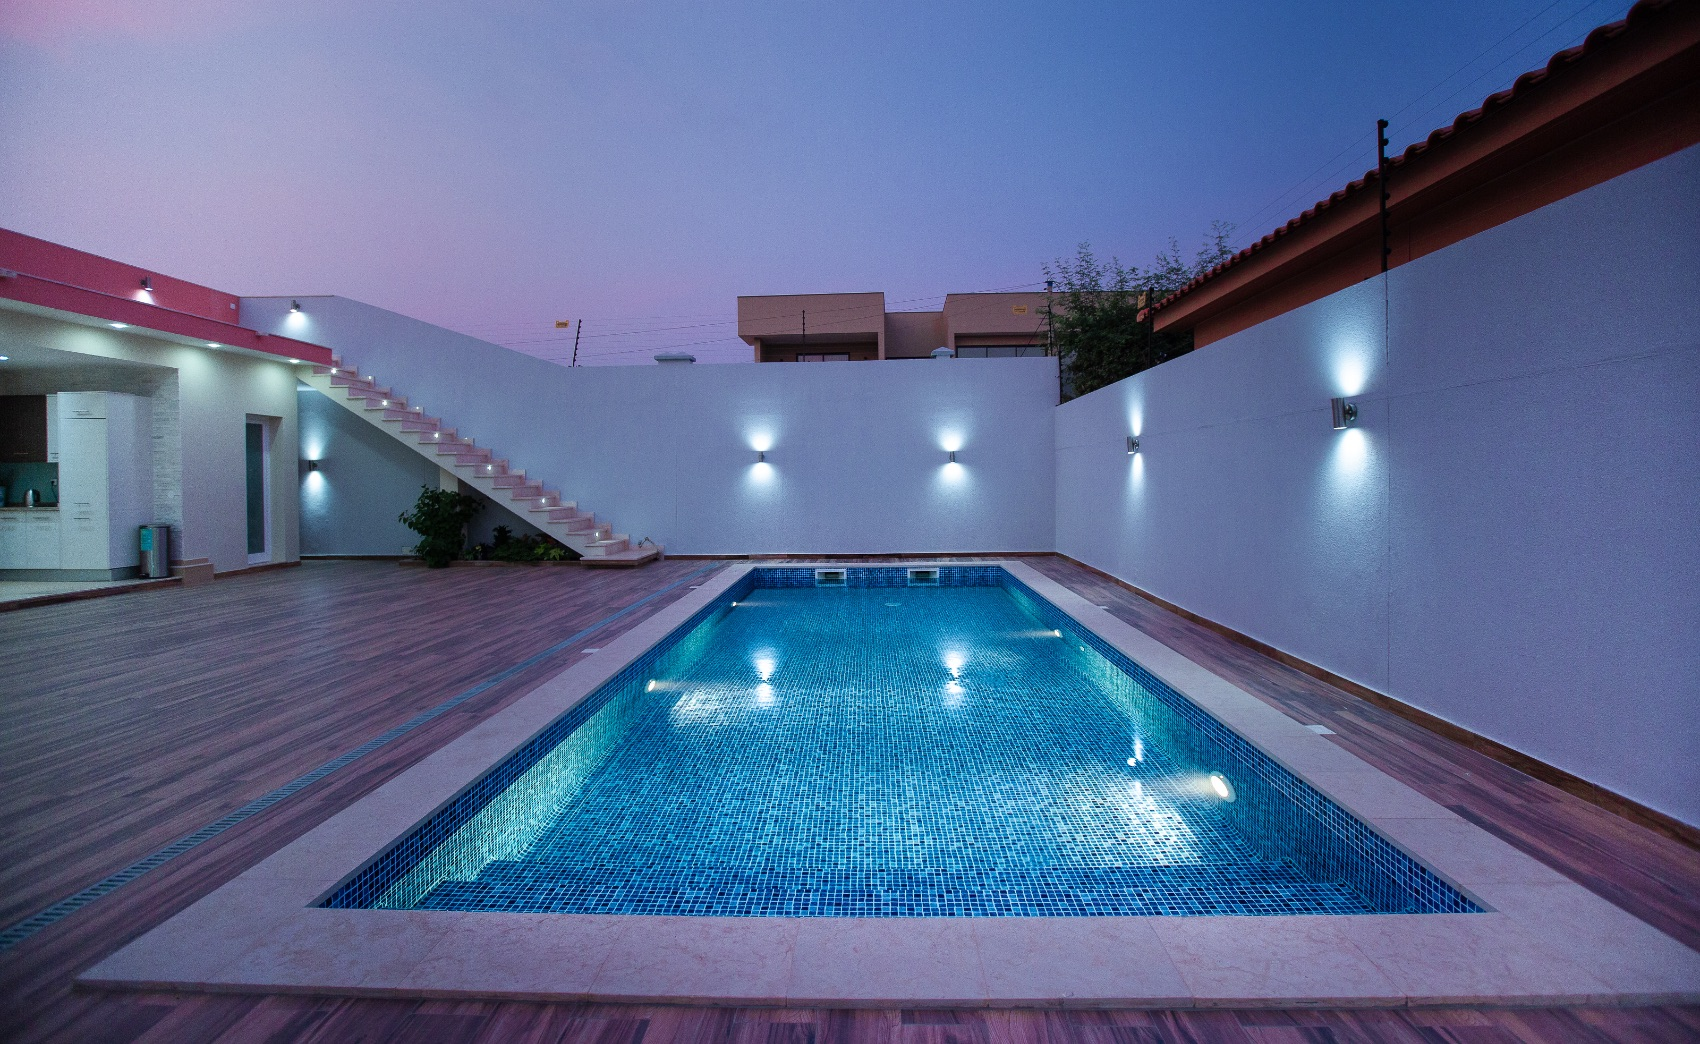 The Importance of having a well-lit swimming pool